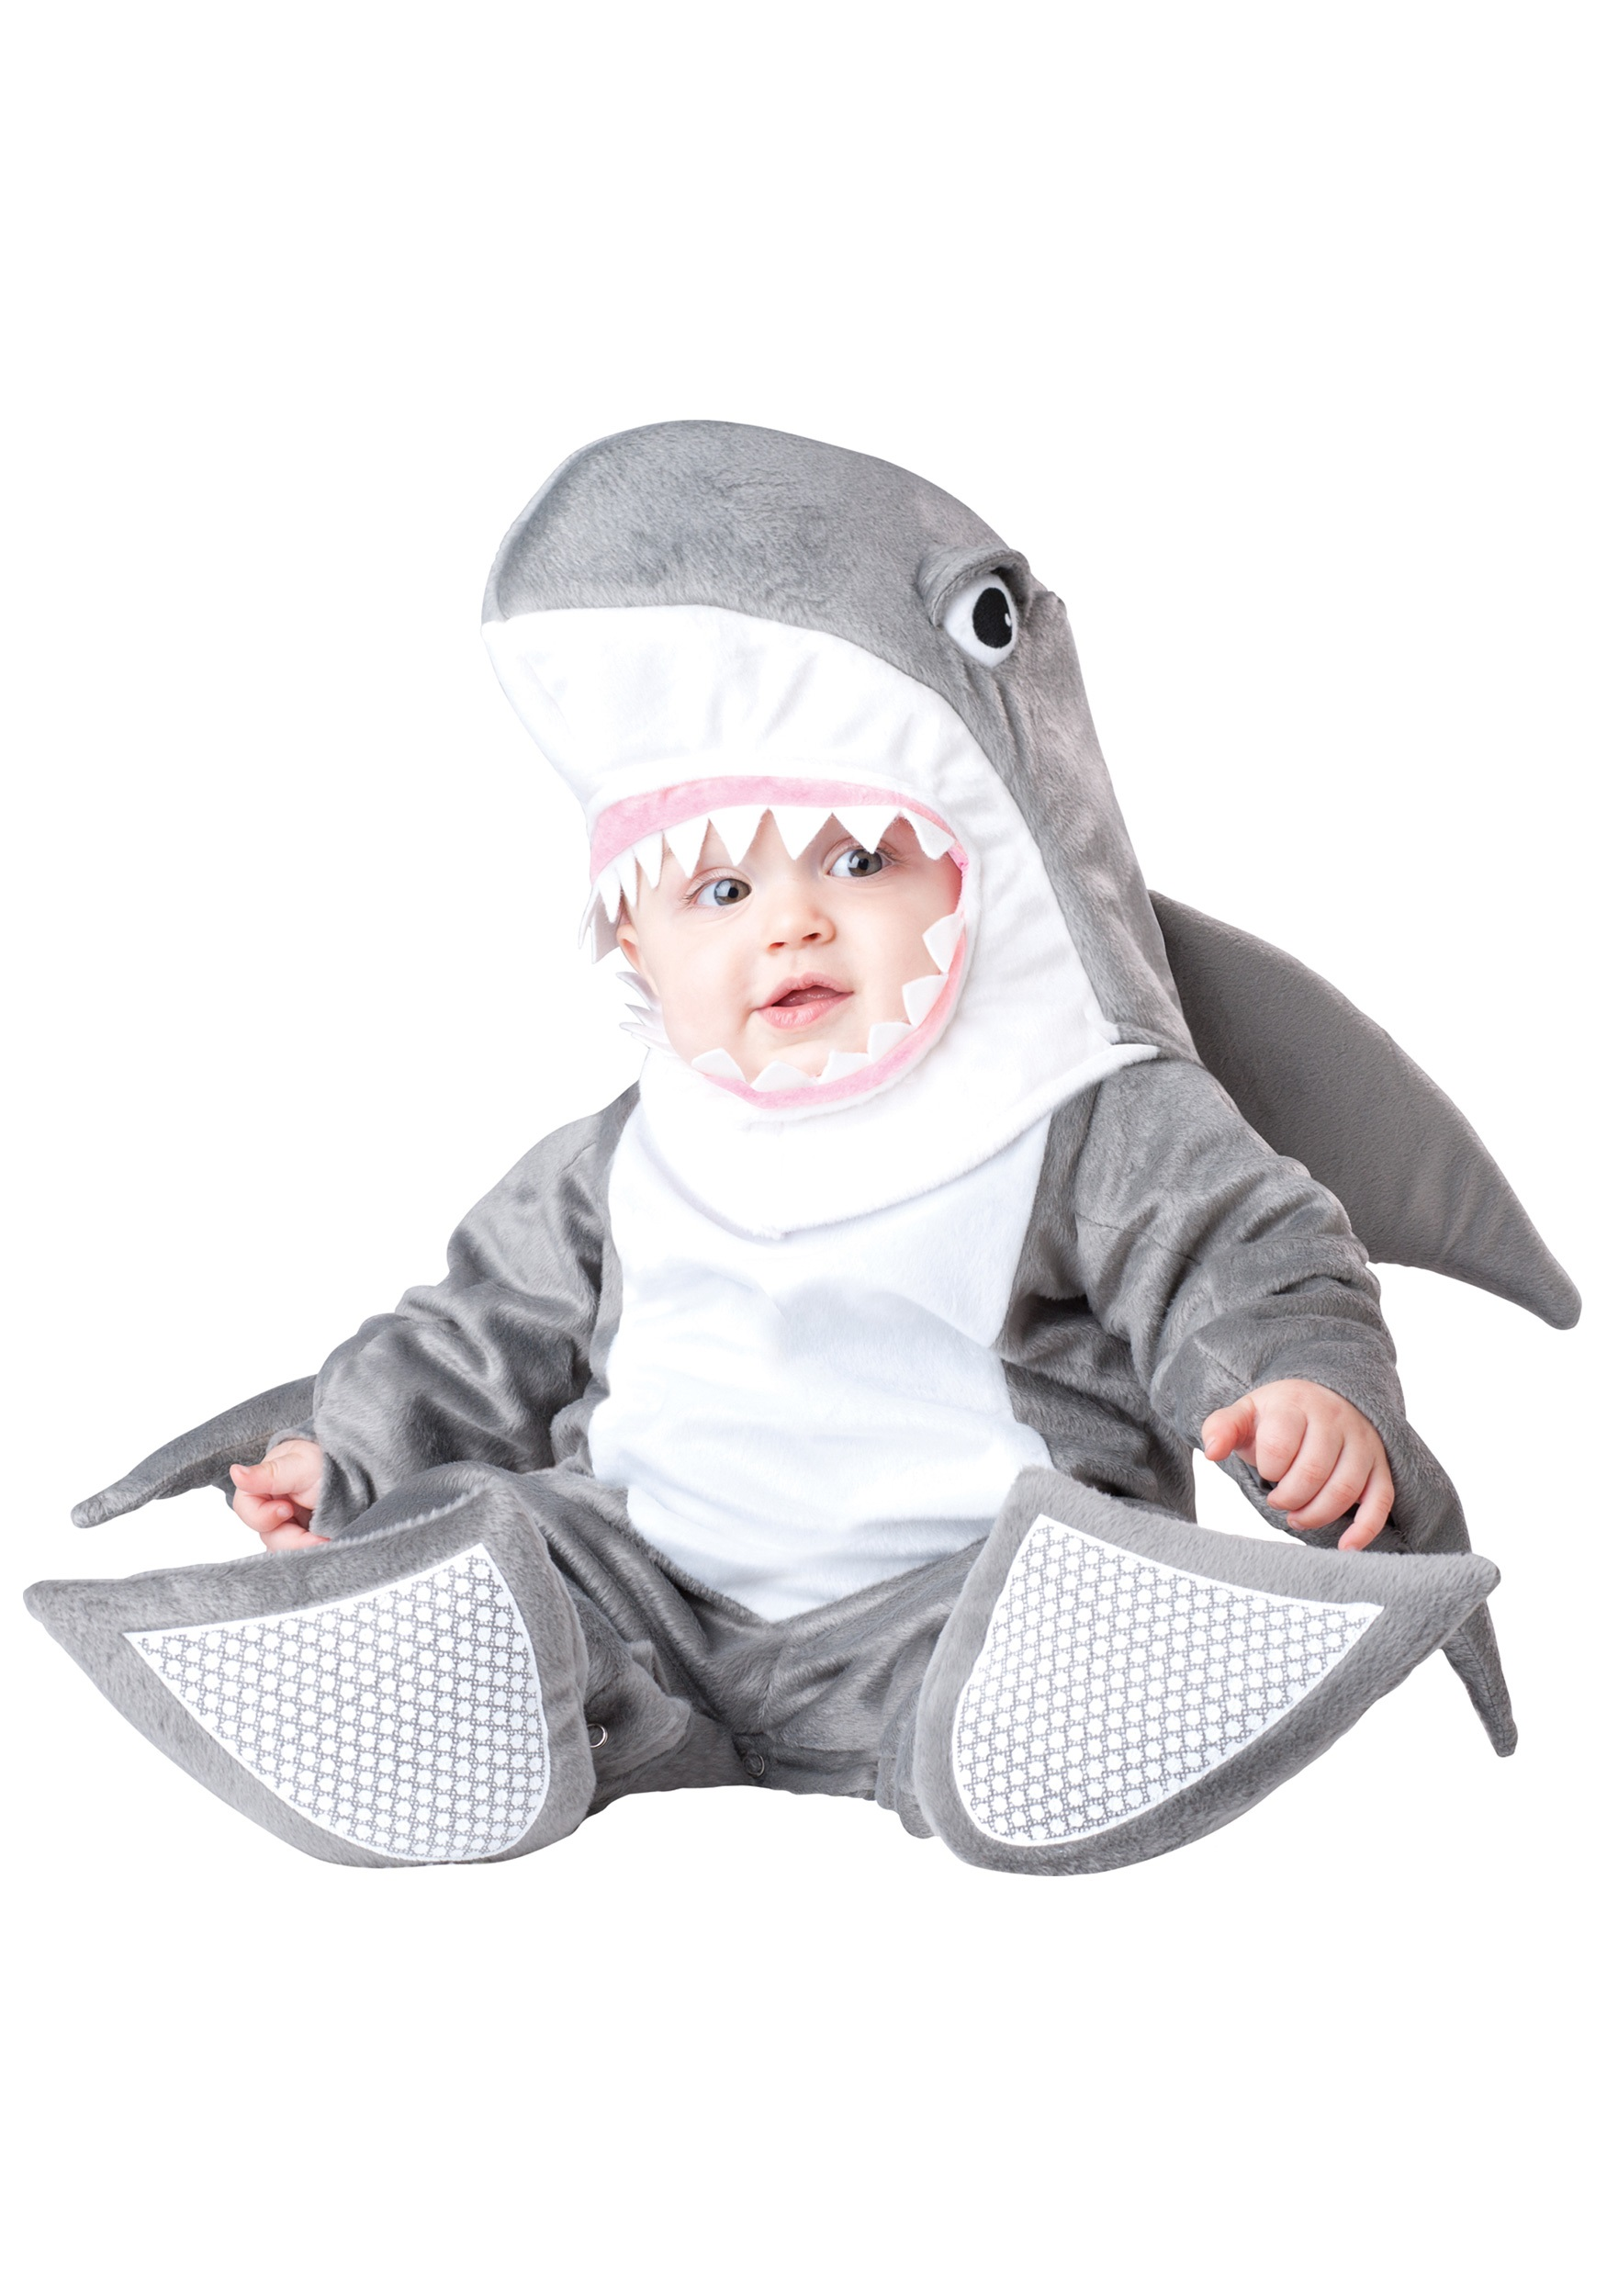 Nothing's cuter than a baby – unless it's a baby in a costume! At Party City, we have one of the best selections of baby costumes, including newborn and infant Halloween costumes. Our soft, affordable baby costumes come in a range of styles and themes to delight everyone!